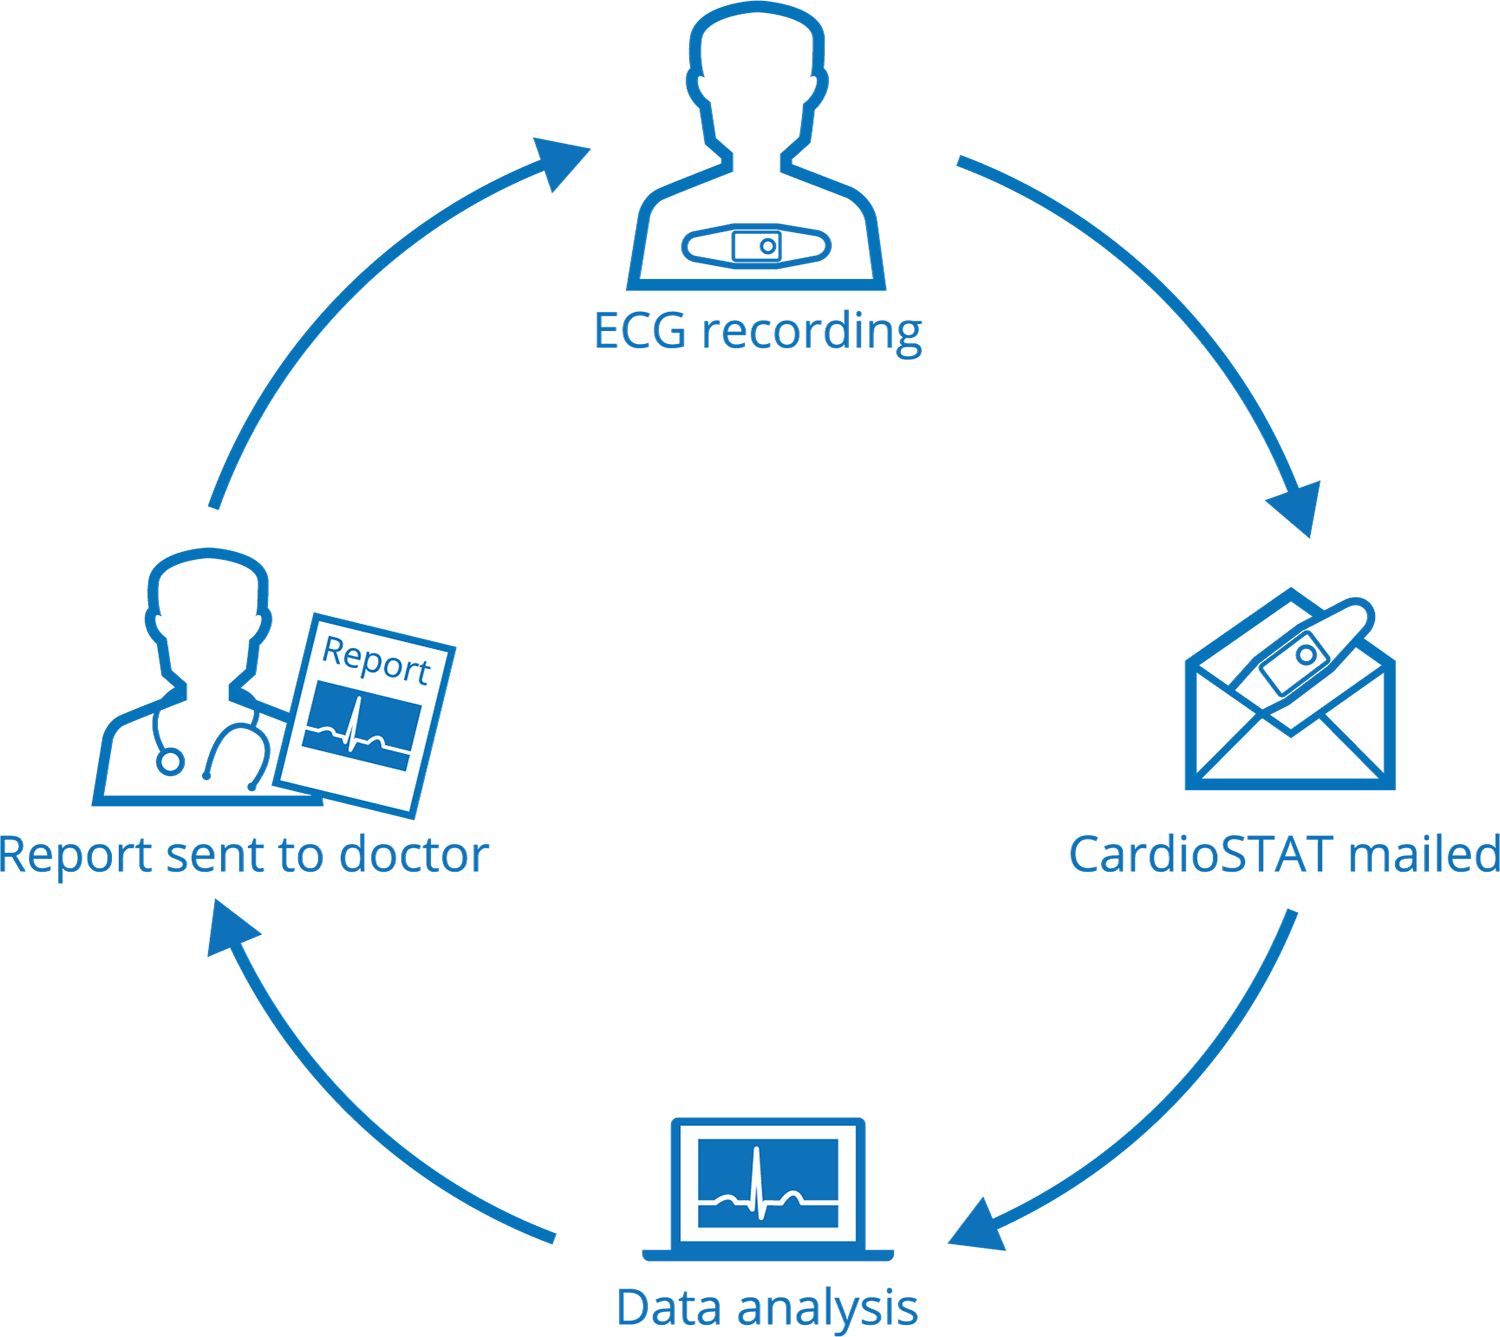 CardioSTAT-workflow.png